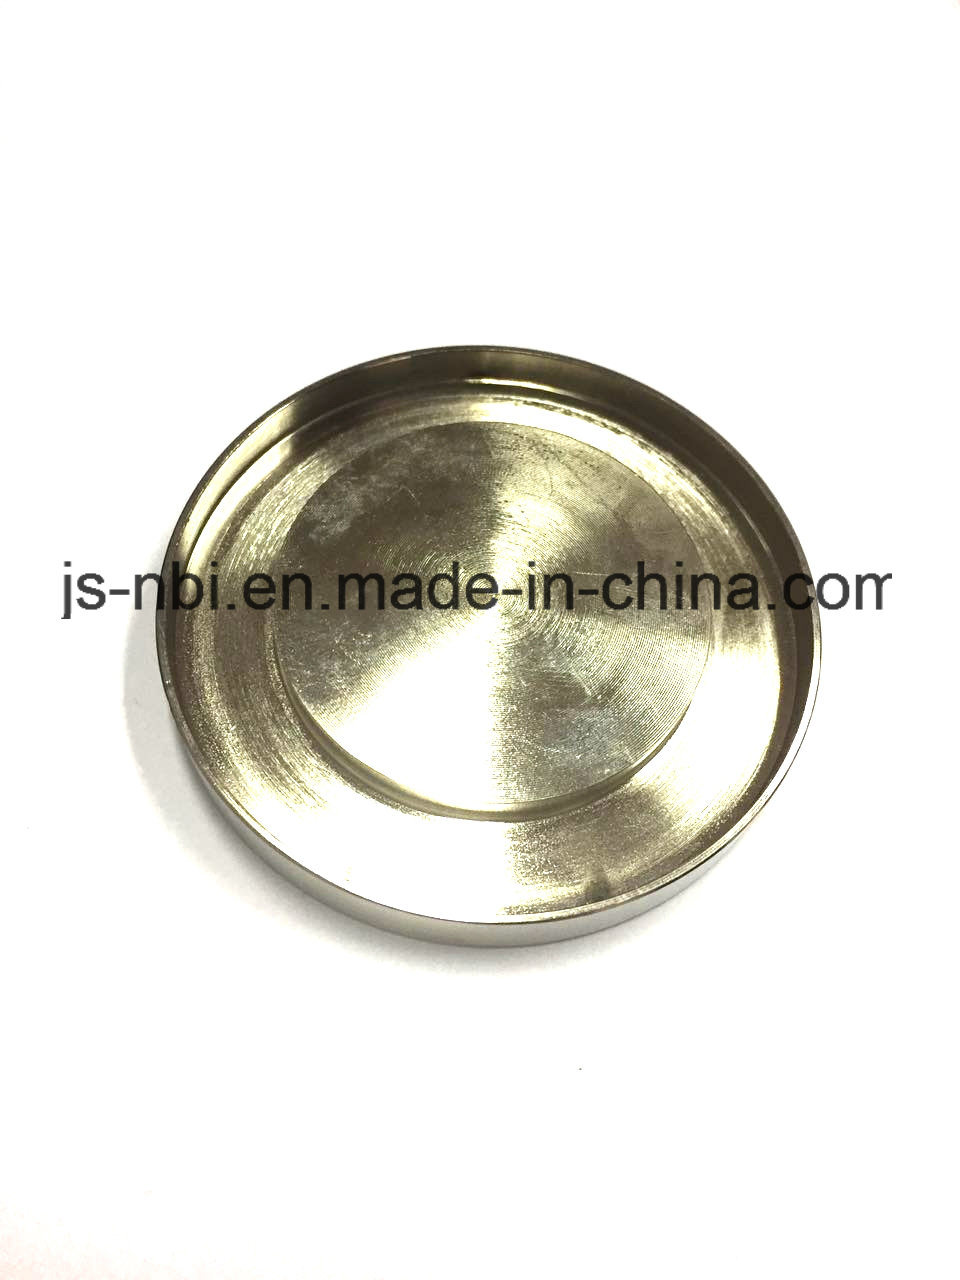 OEM Forging and Machining Steel Plate with Nickel Plated